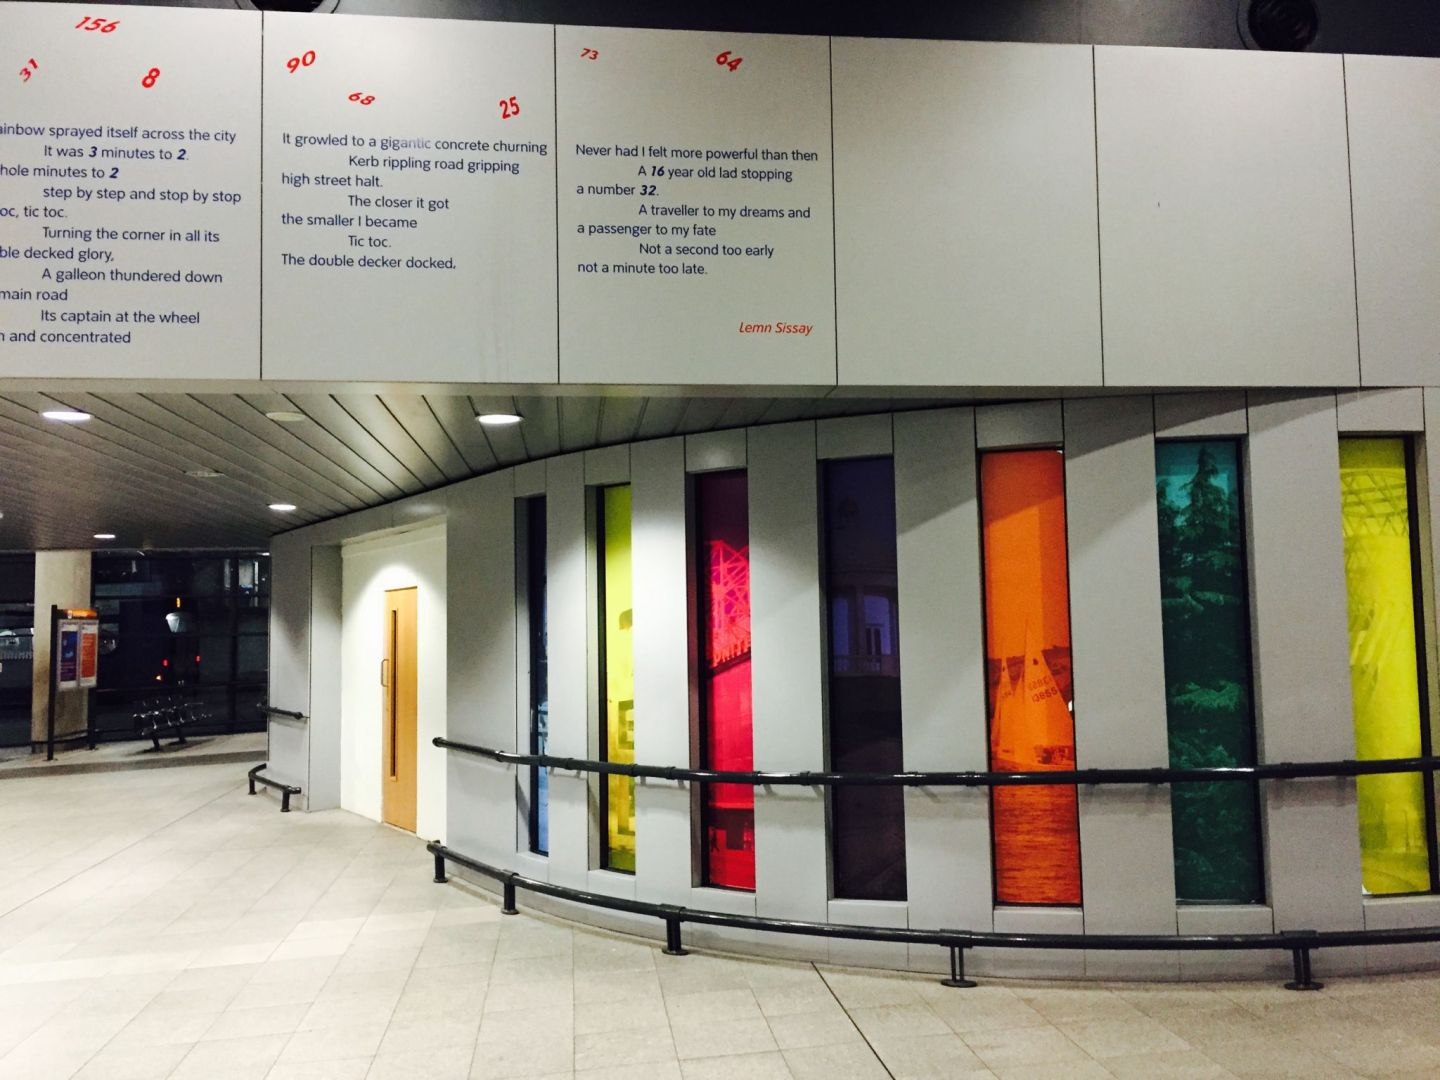 The interior of Shude Hill bus station, Manchester, including the 'poem for peace' by Lemn Sissay. Pic @jabberingjourno